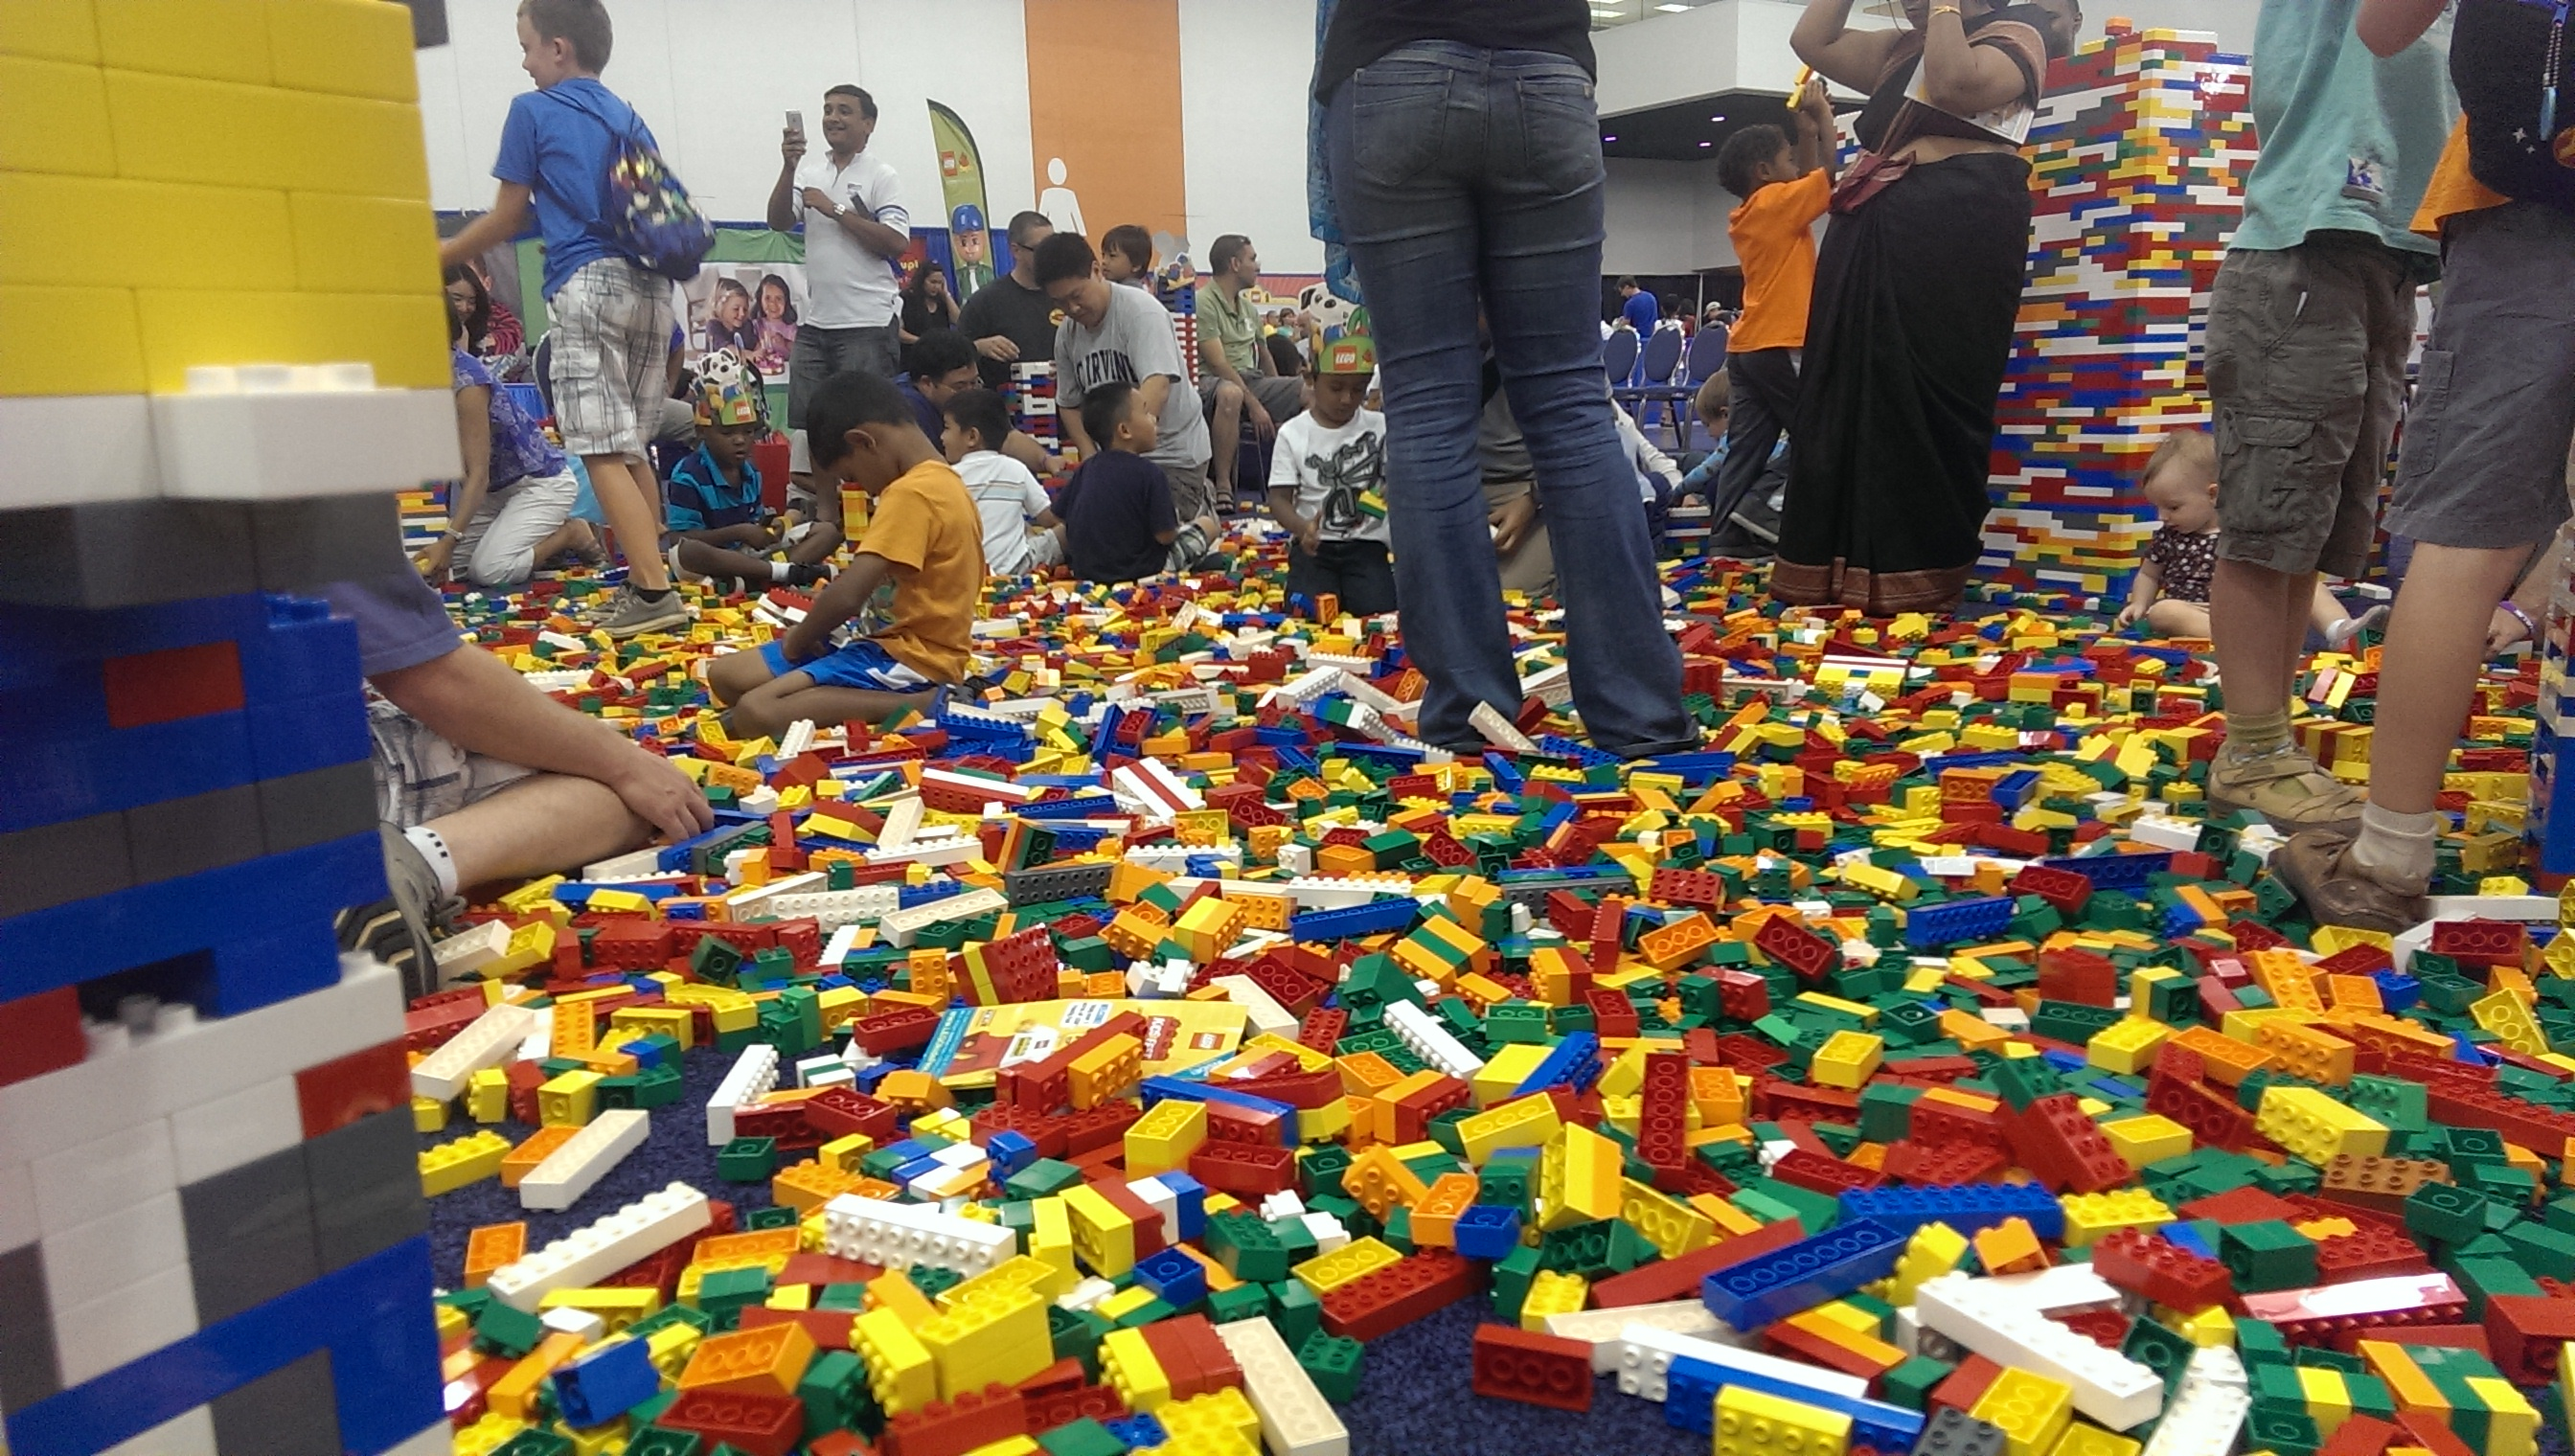 A trip to Lego Kids Fest in the Bay Area